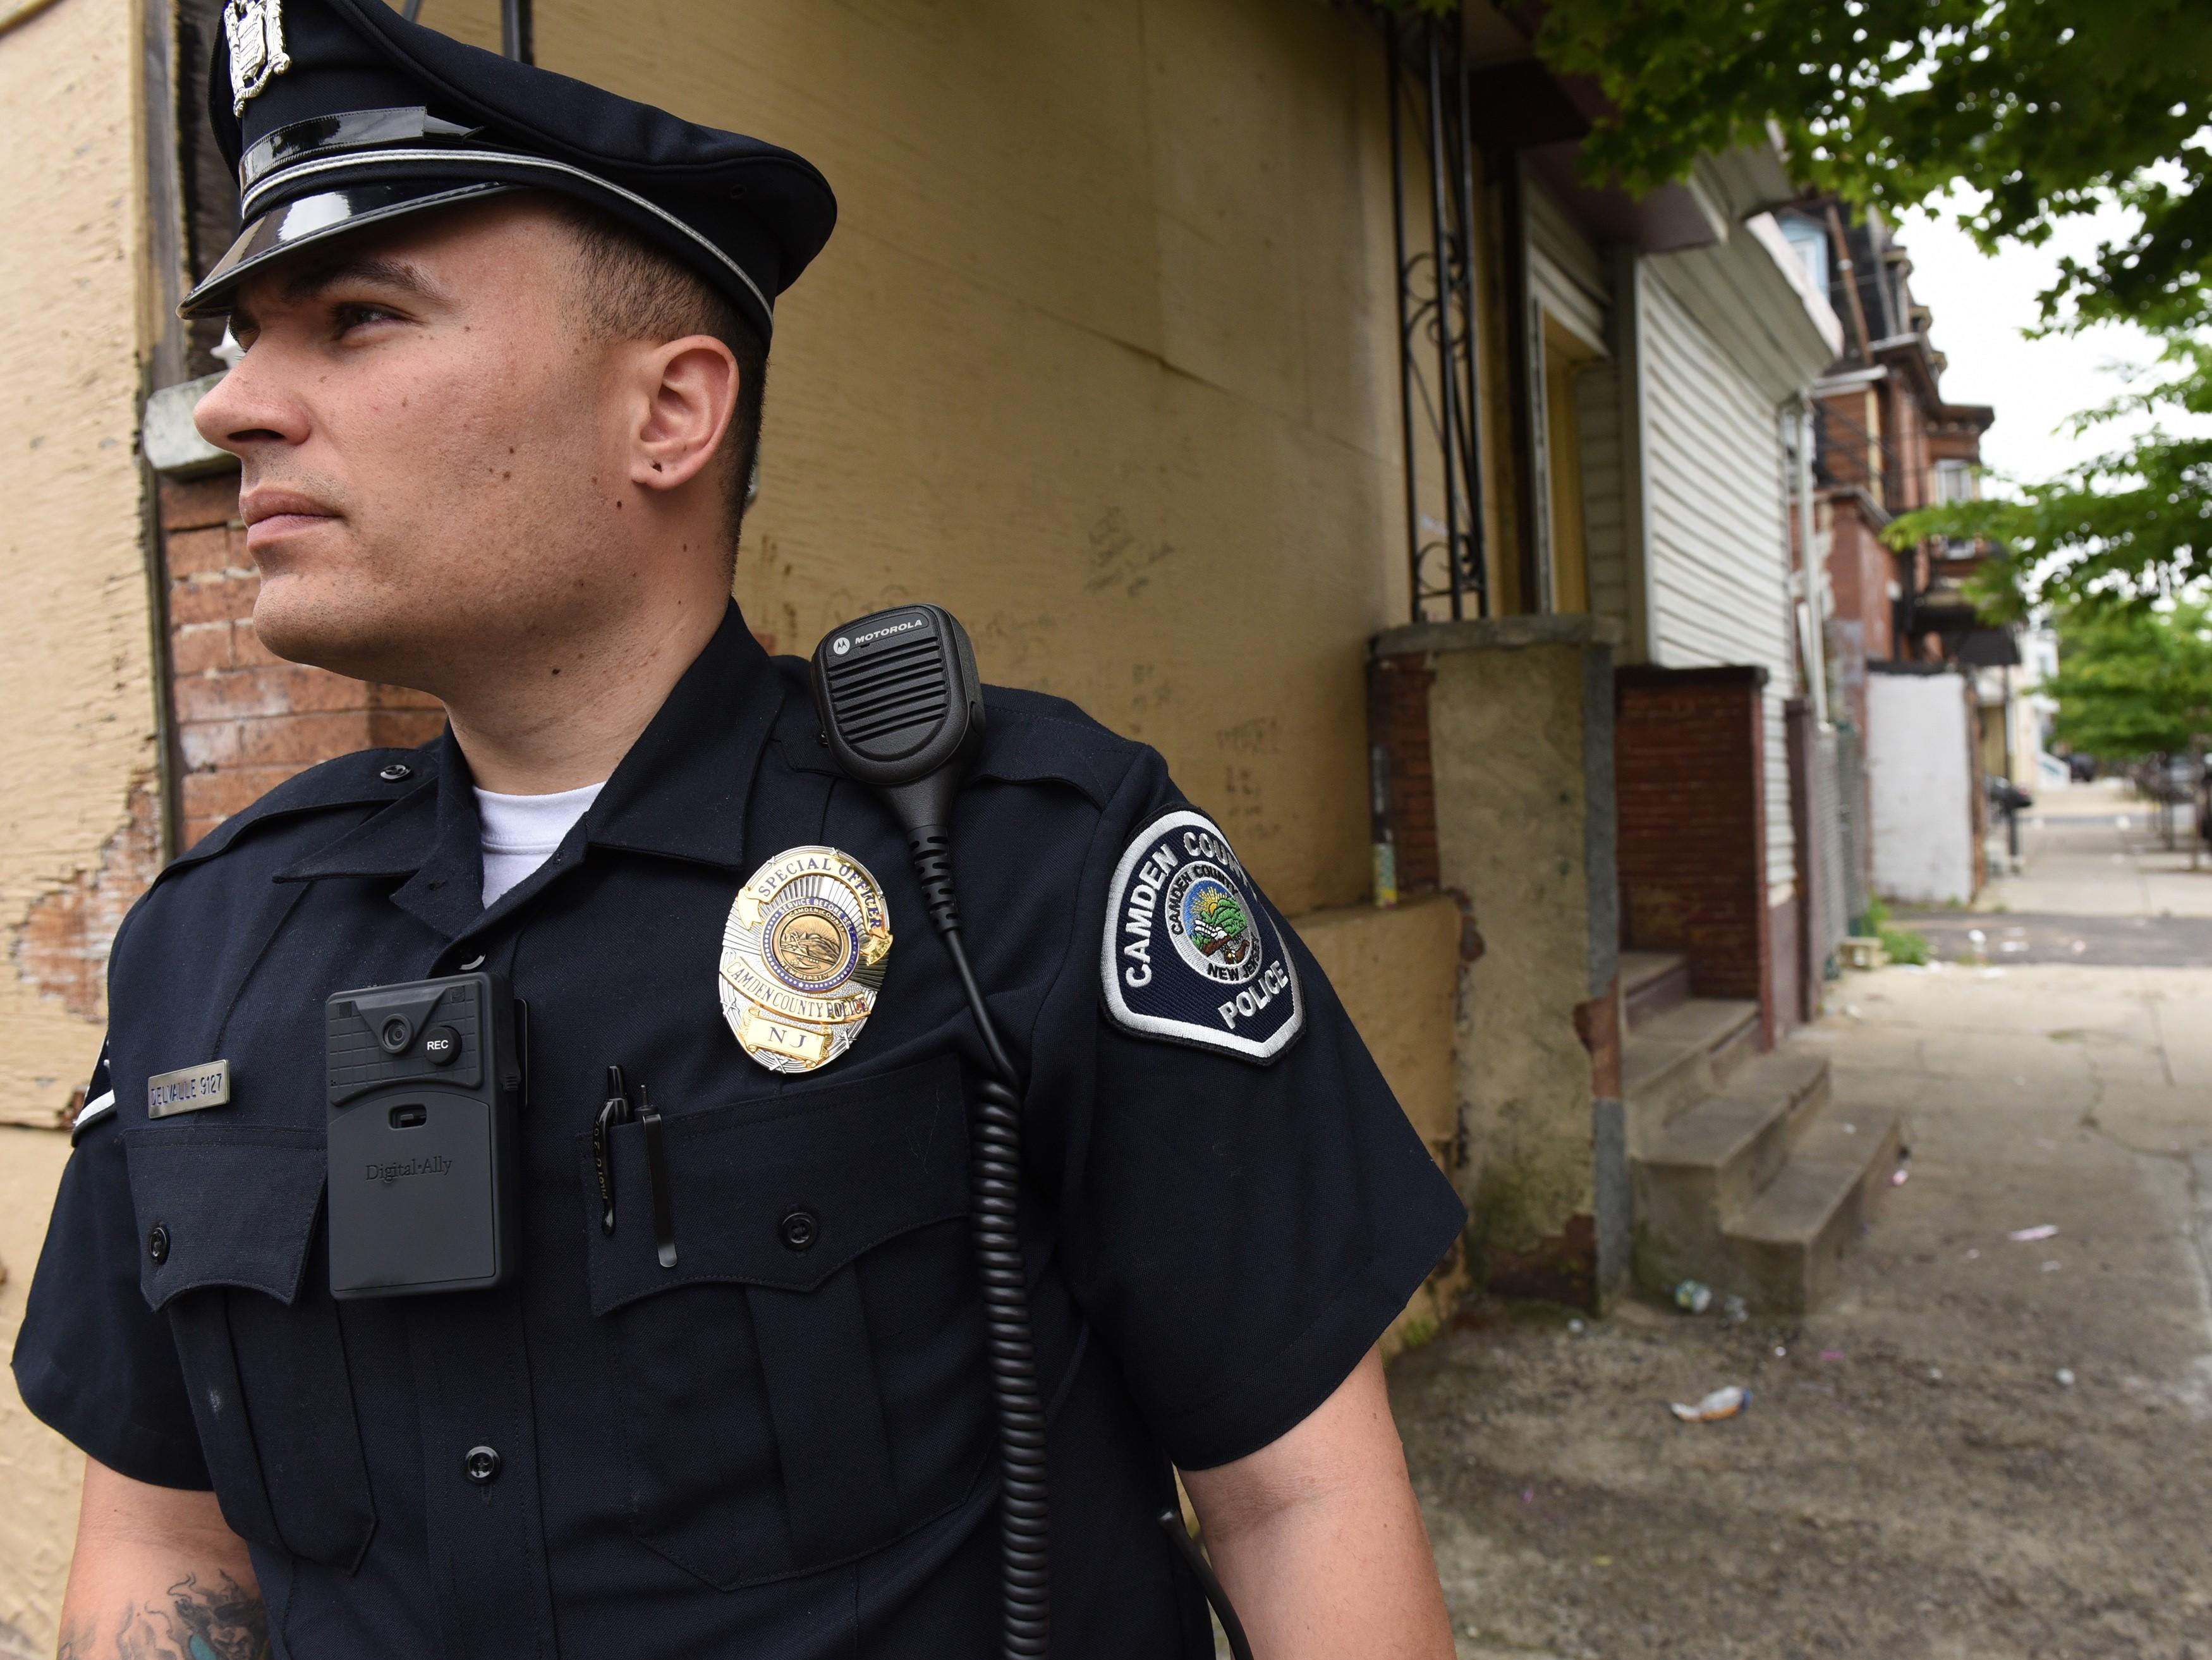 What the city where defunding police worked really tells us about it